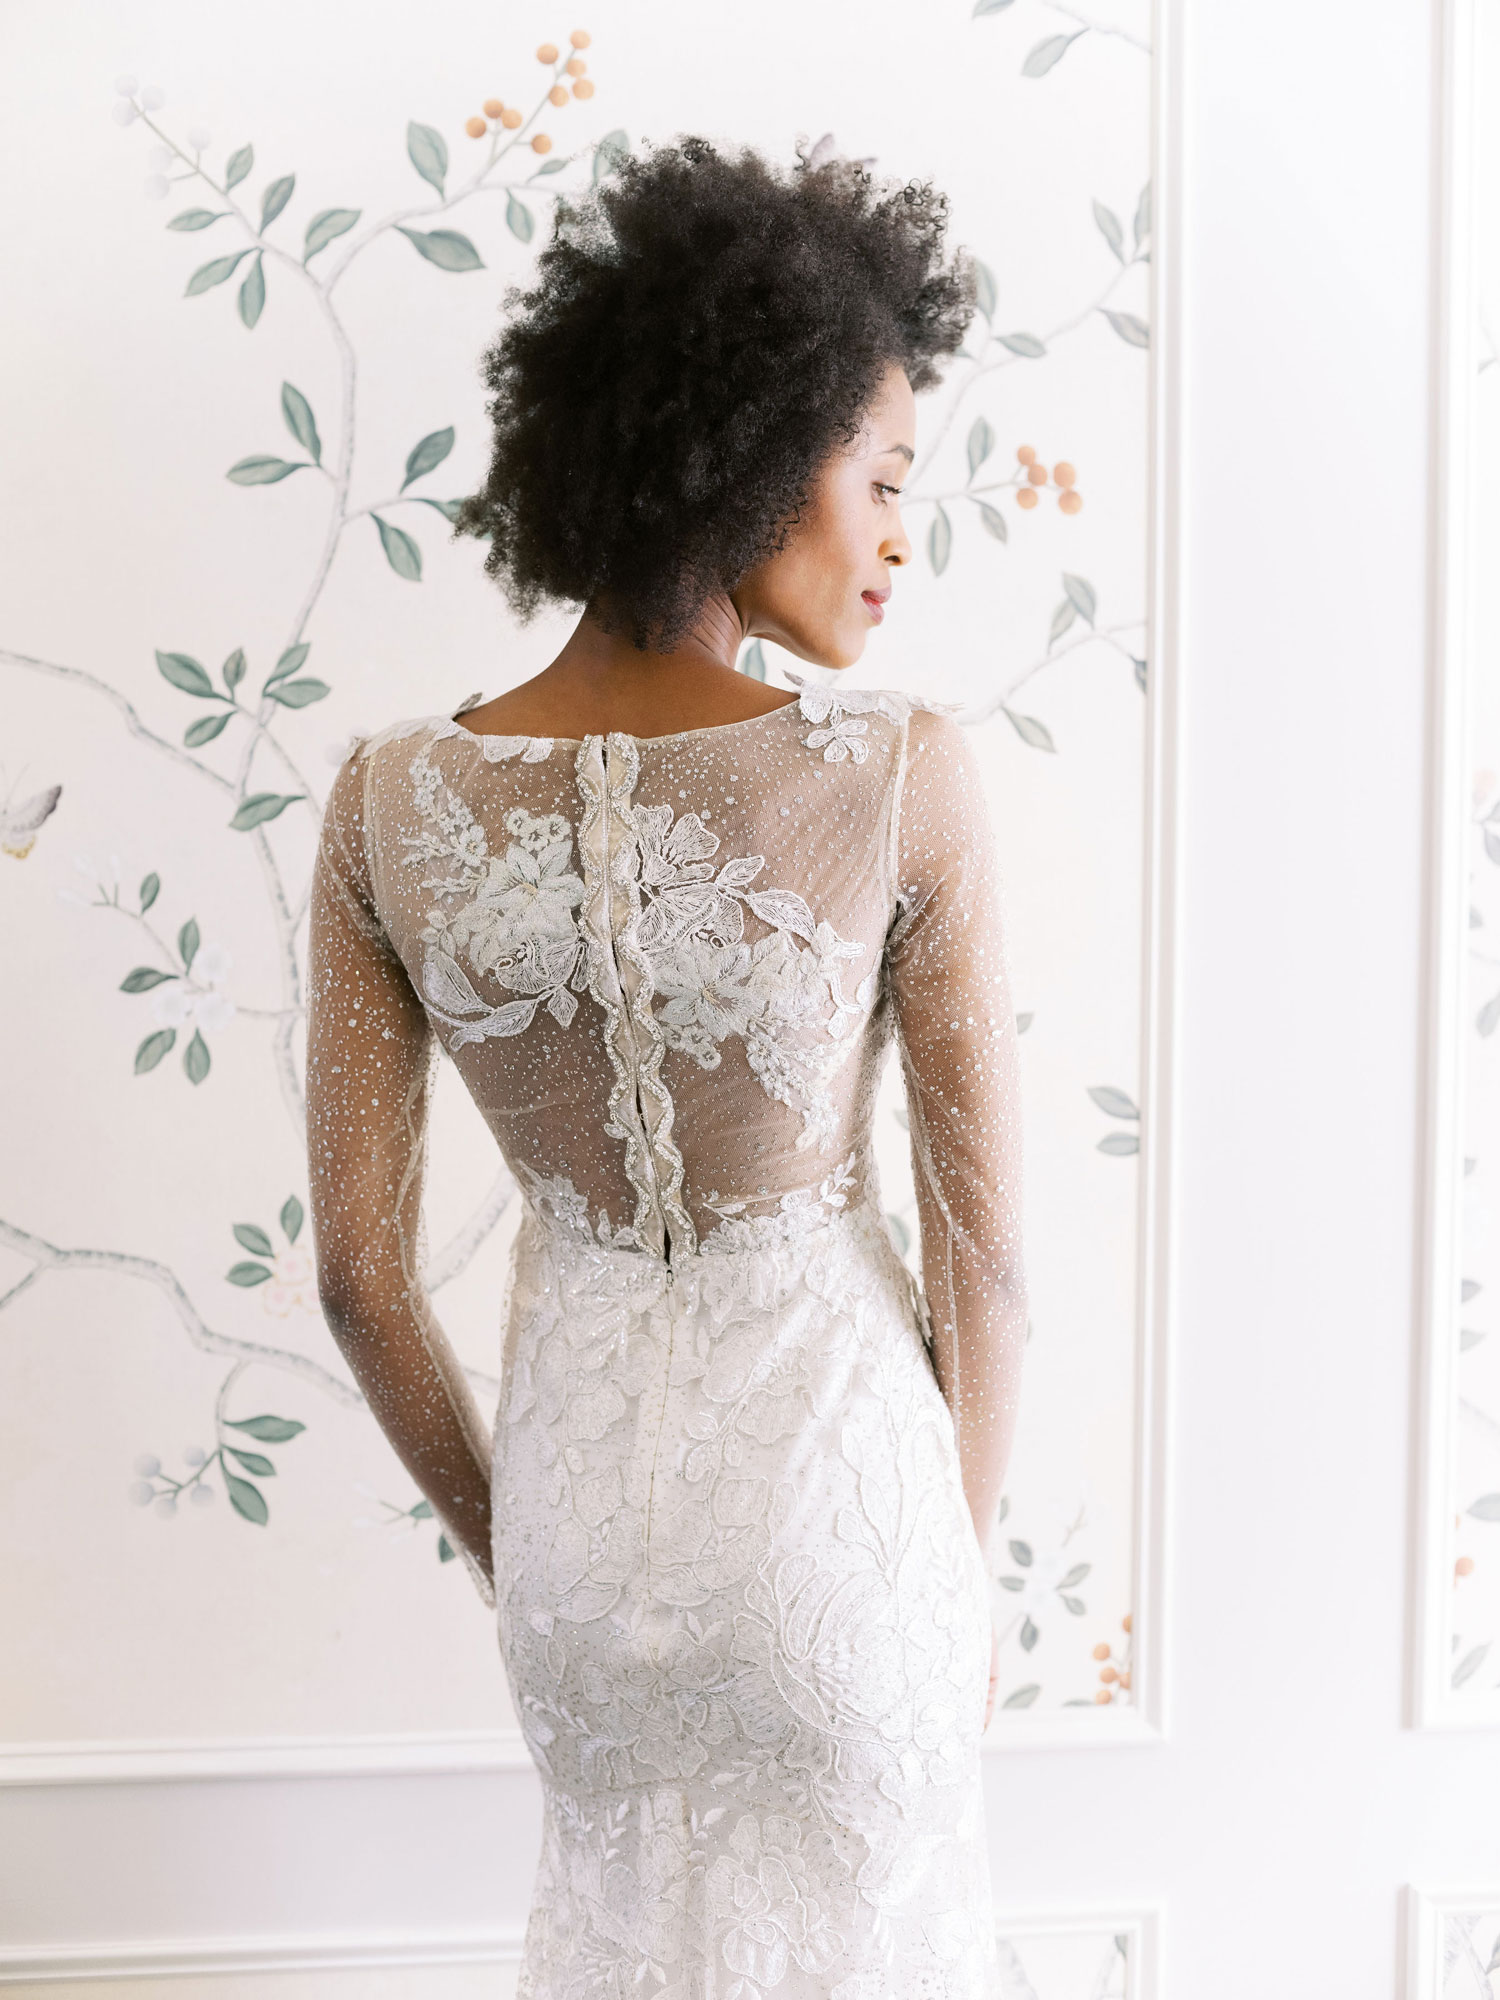 Claire Pettibone Evolution 2020 bridal collection Stardust wedding dress sparkle back